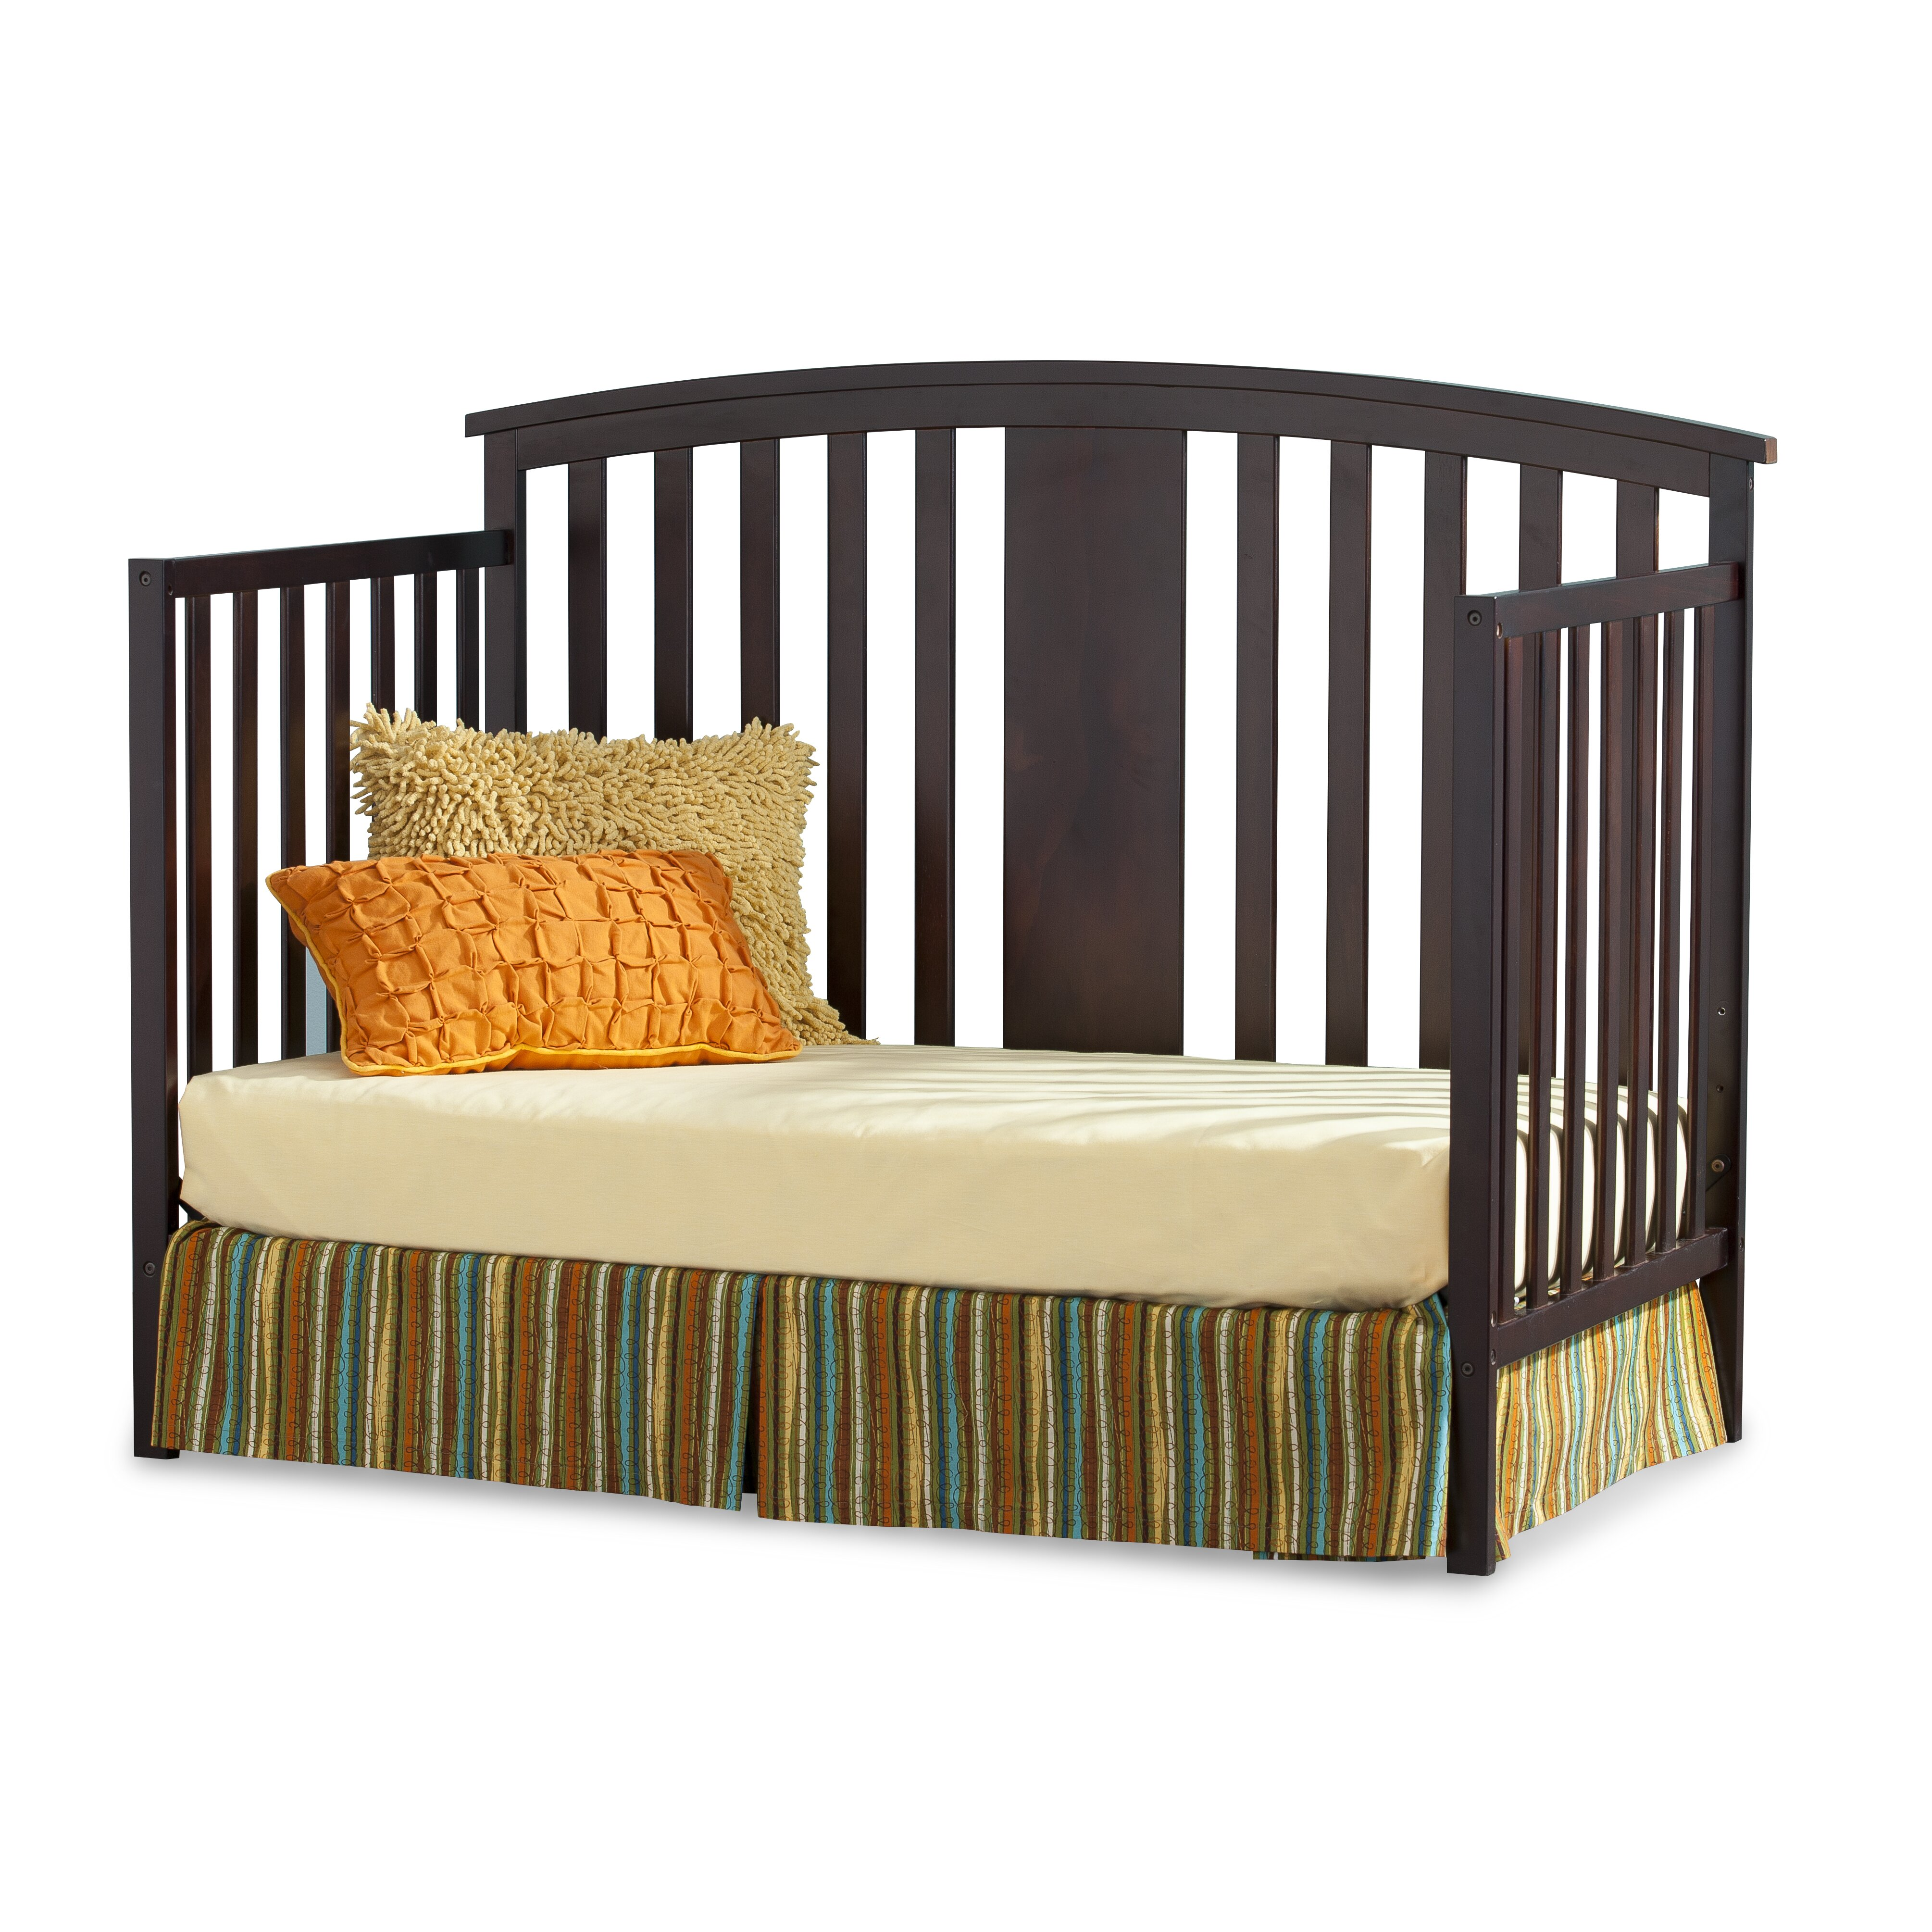 Greyson 3 In 1 Convertible Crib 04550 309 KD2087 on kd kitchens and bath